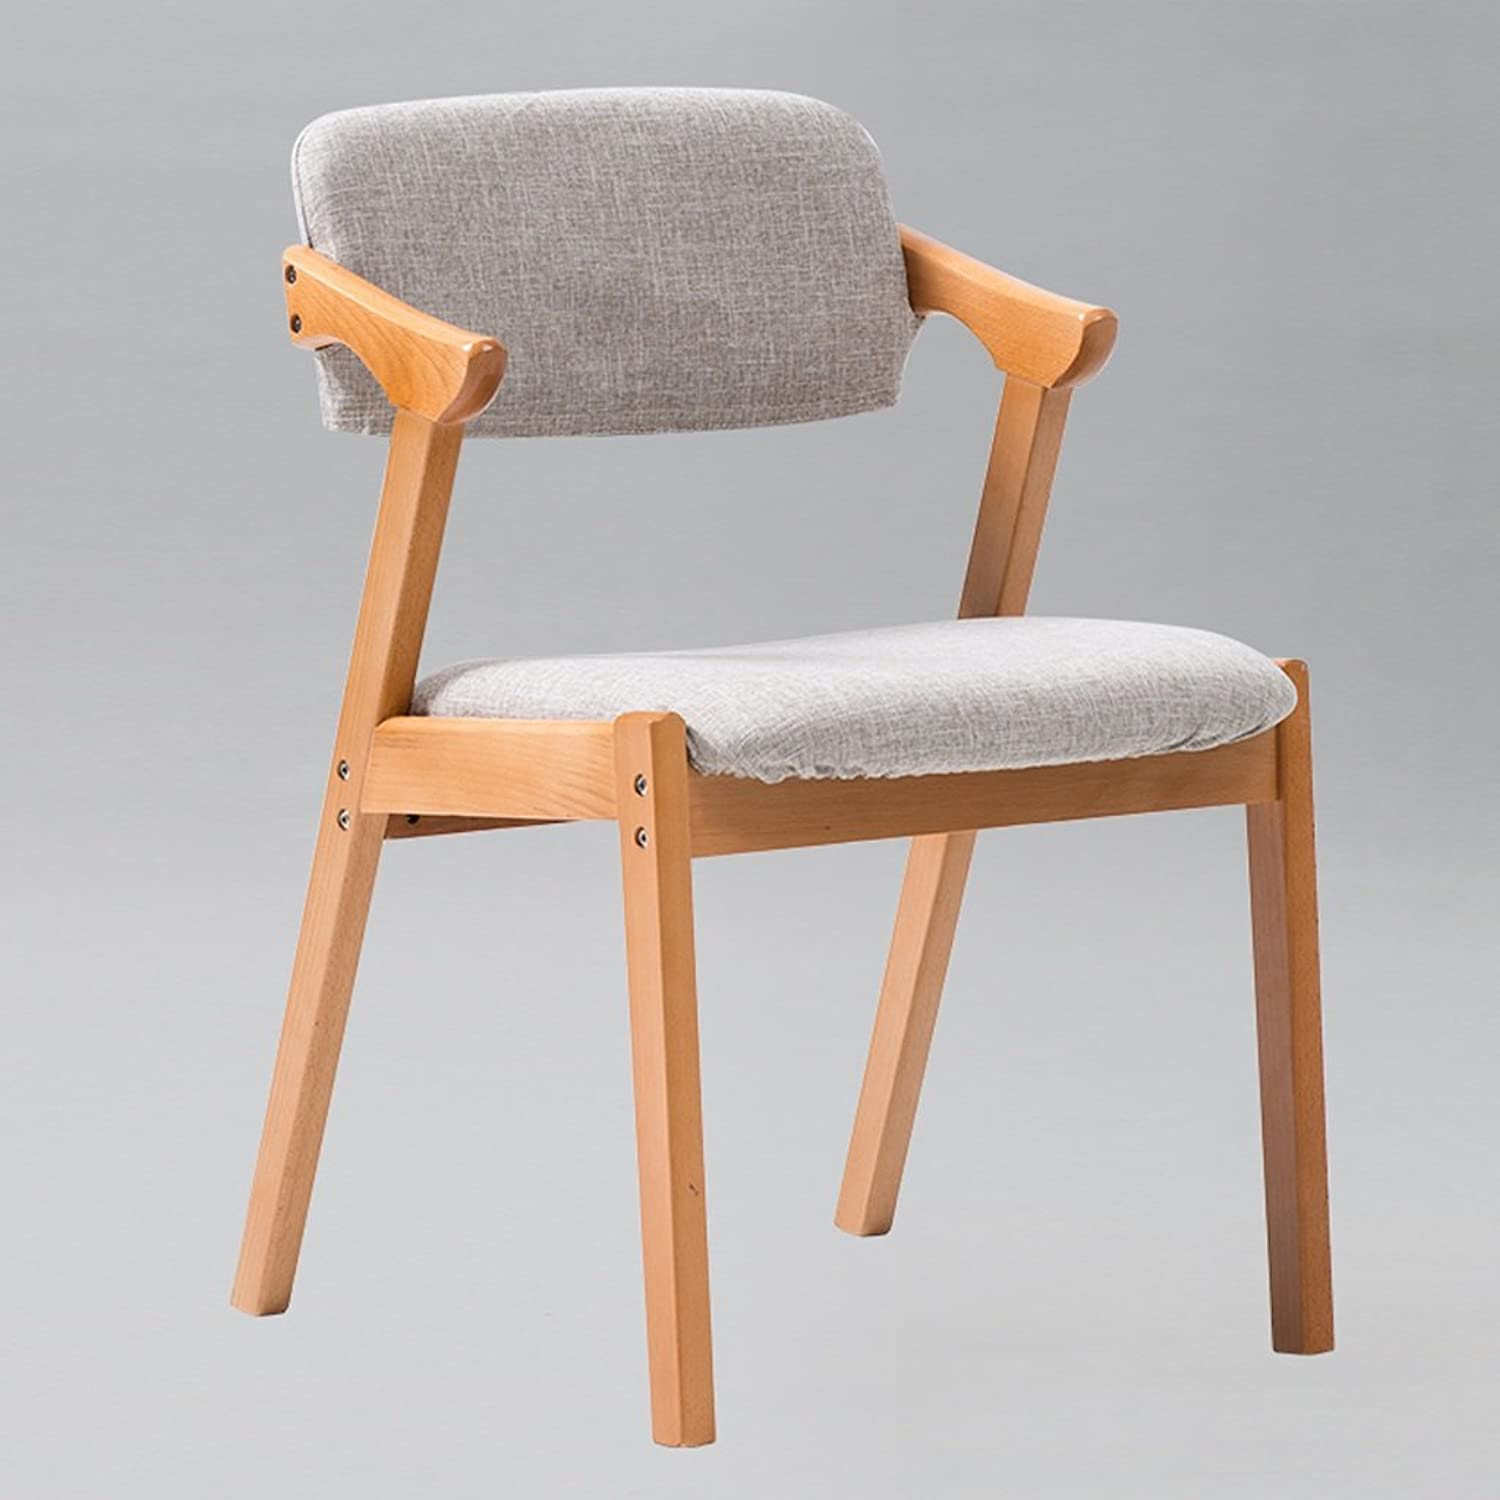 Cloth Art Backrest Stool Family Dining Table Chair Nordic Minimalist Cafeteria Coffee Chair Solid Wooden Stool Feet (color   Beige)